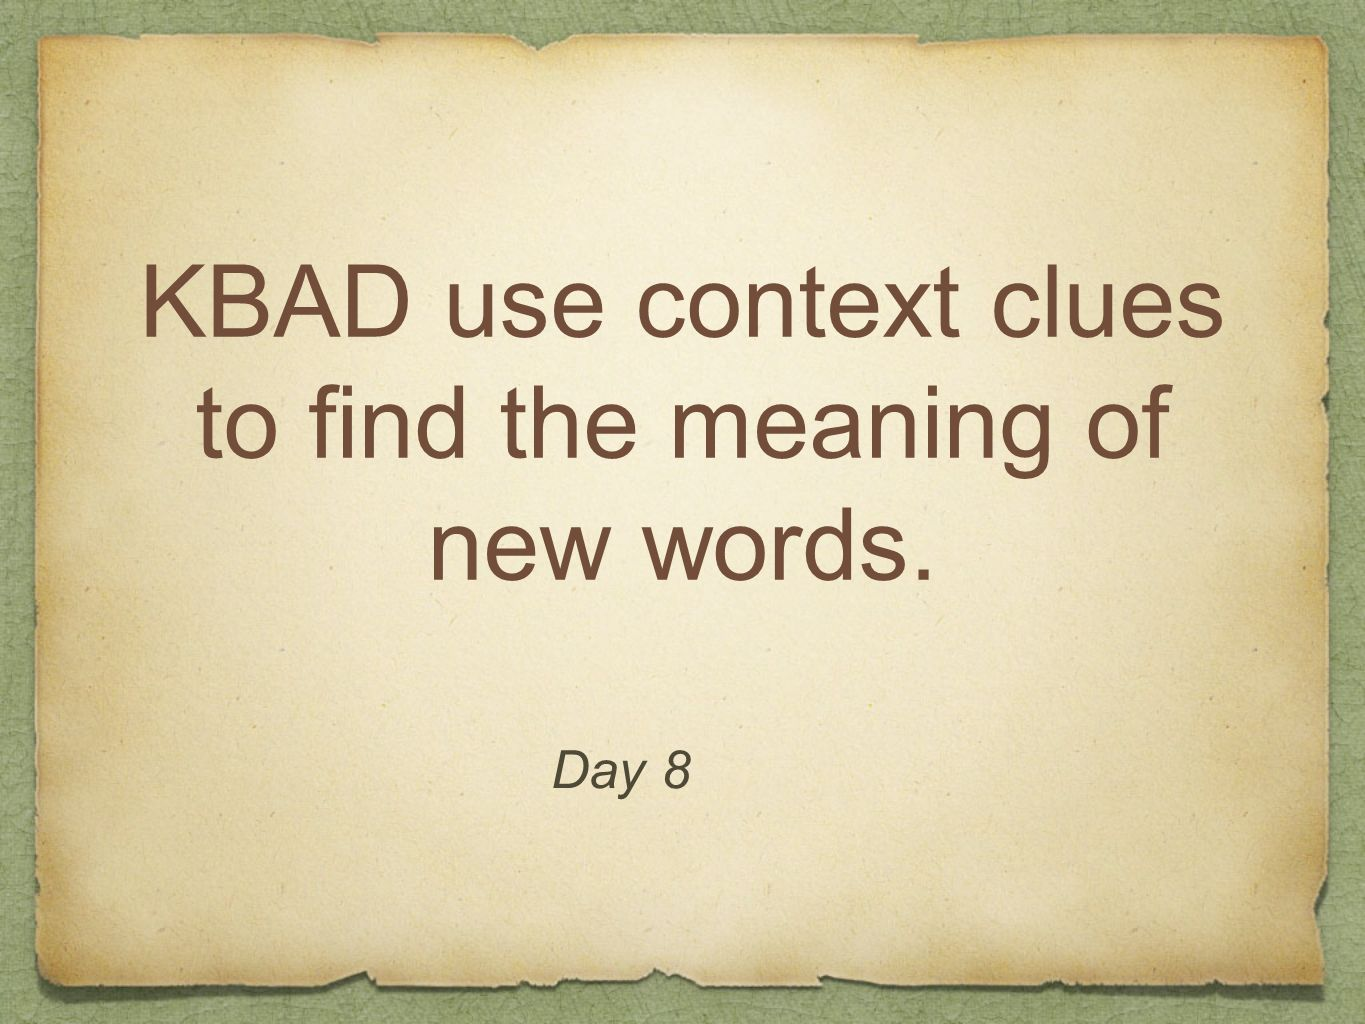 KBAD use context clues to find the meaning of new words. Day 8